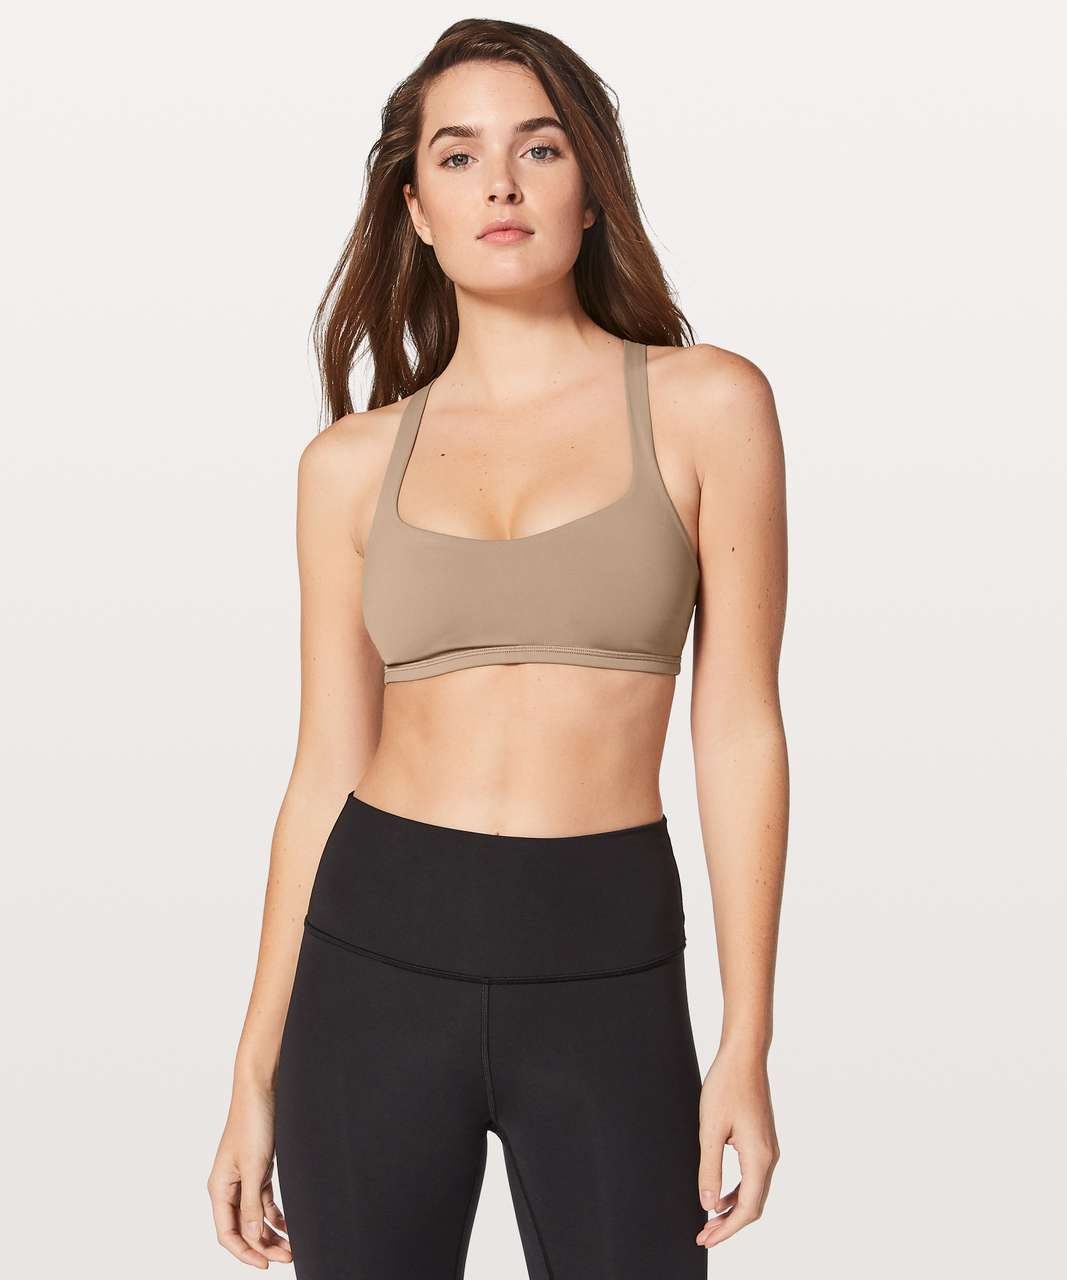 Lululemon Free To Be Bra - Soft Sand